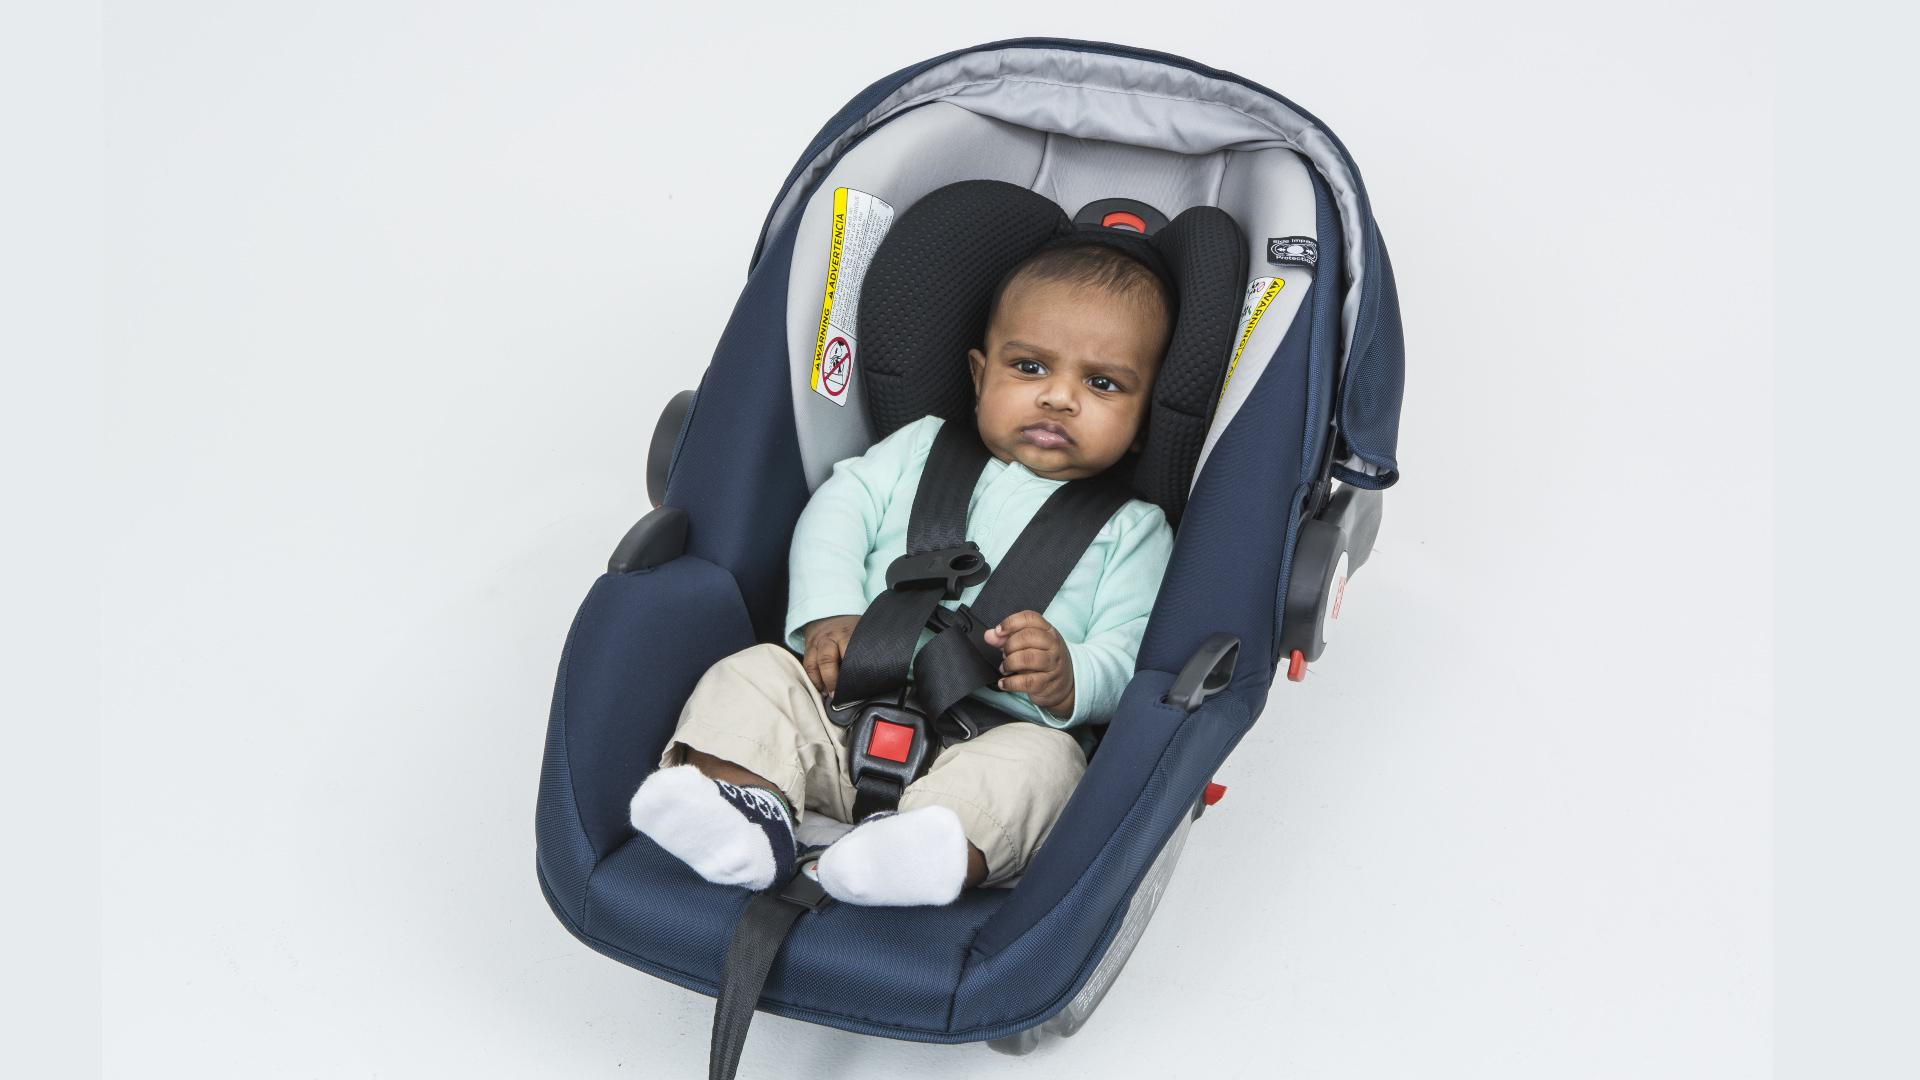 talking cars on why everyone needs to understand car seat safety